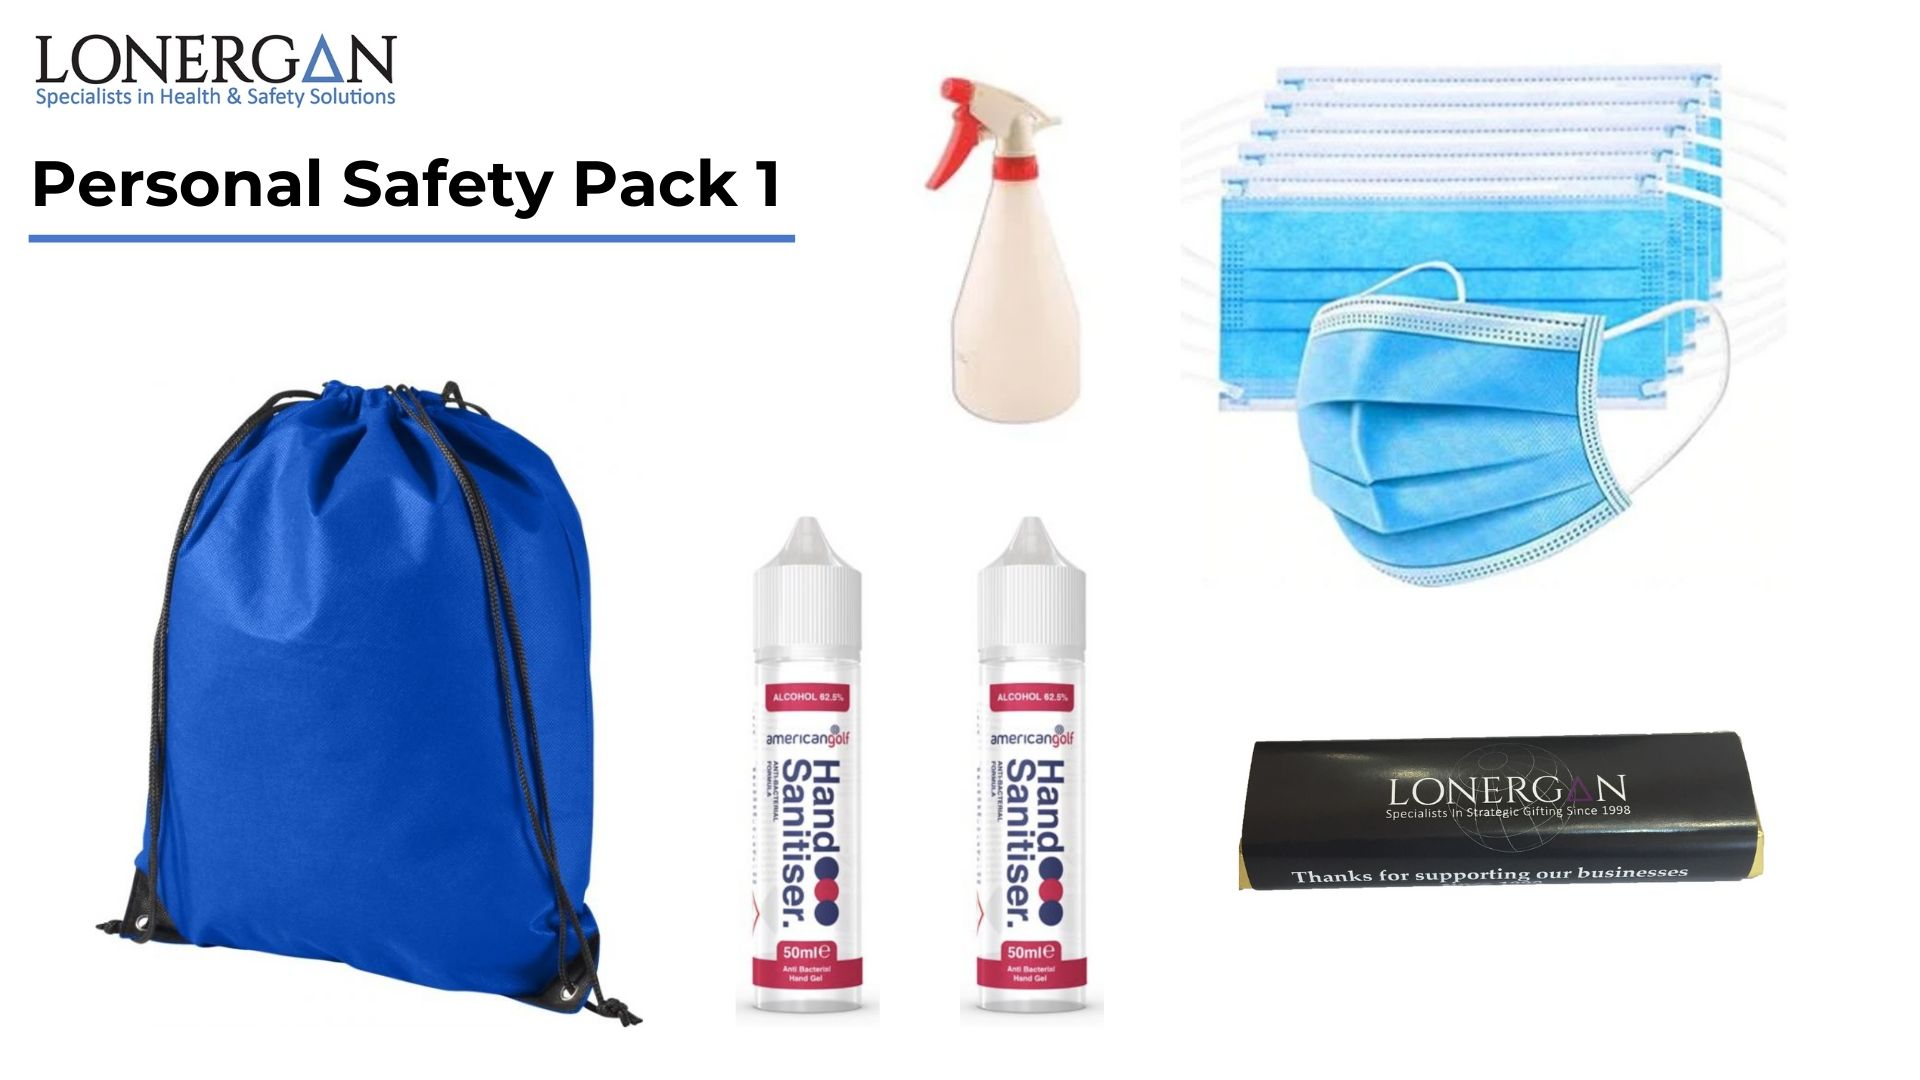 Personal Safety Pack 1 Image